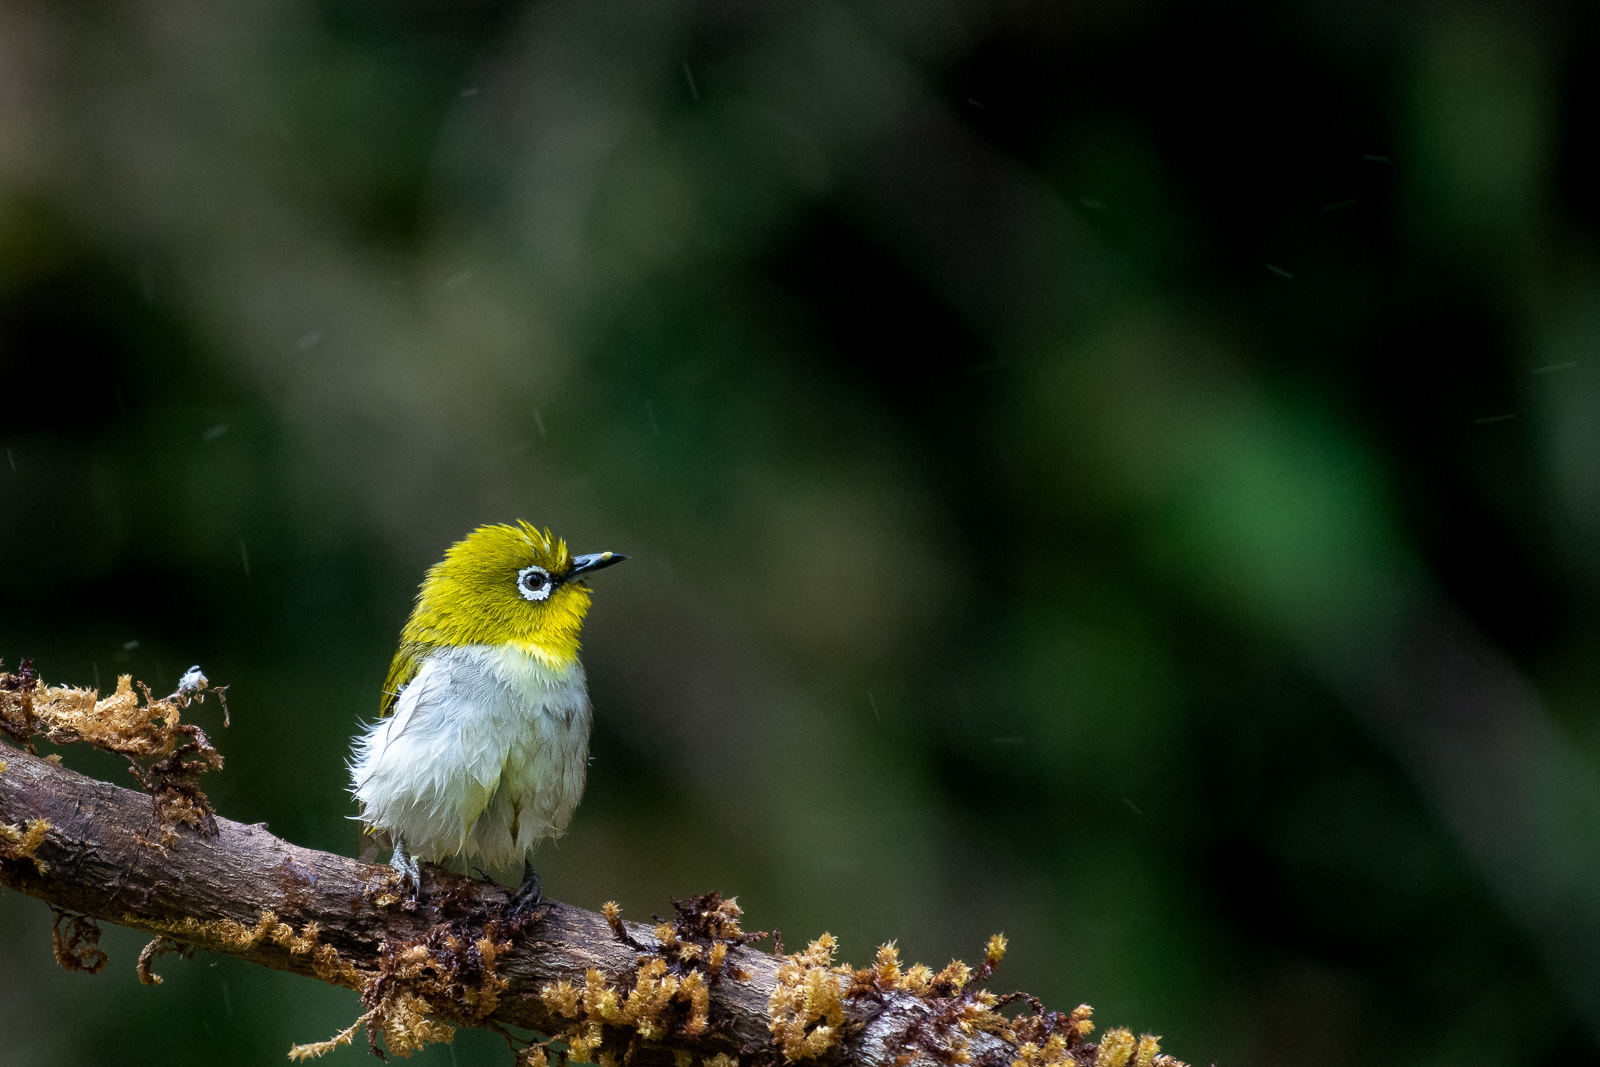 Image: Small sized Oriental white-eye bird photographed at a close distance of 8ft at a focal length...